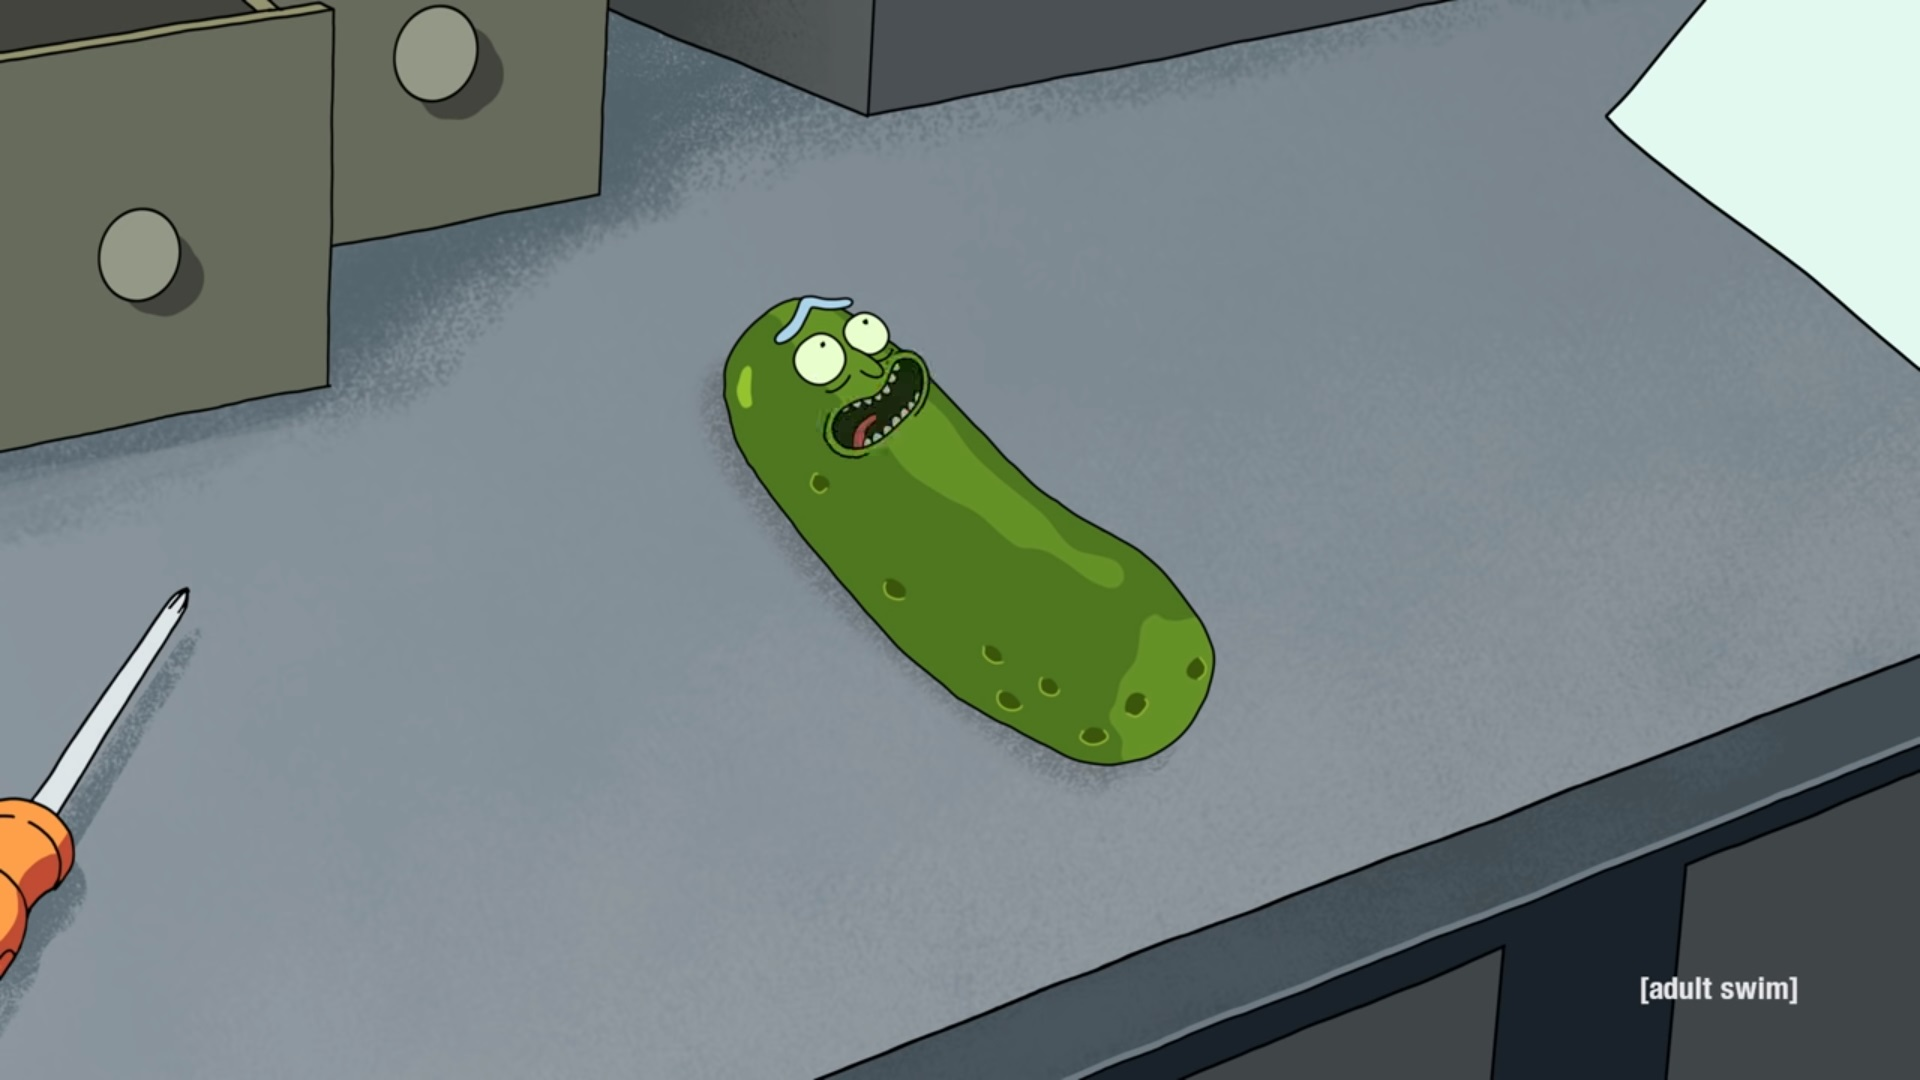 the-outtakes-for-rick-and-mortys-pickle-rick-scene-are-great-social.jpg